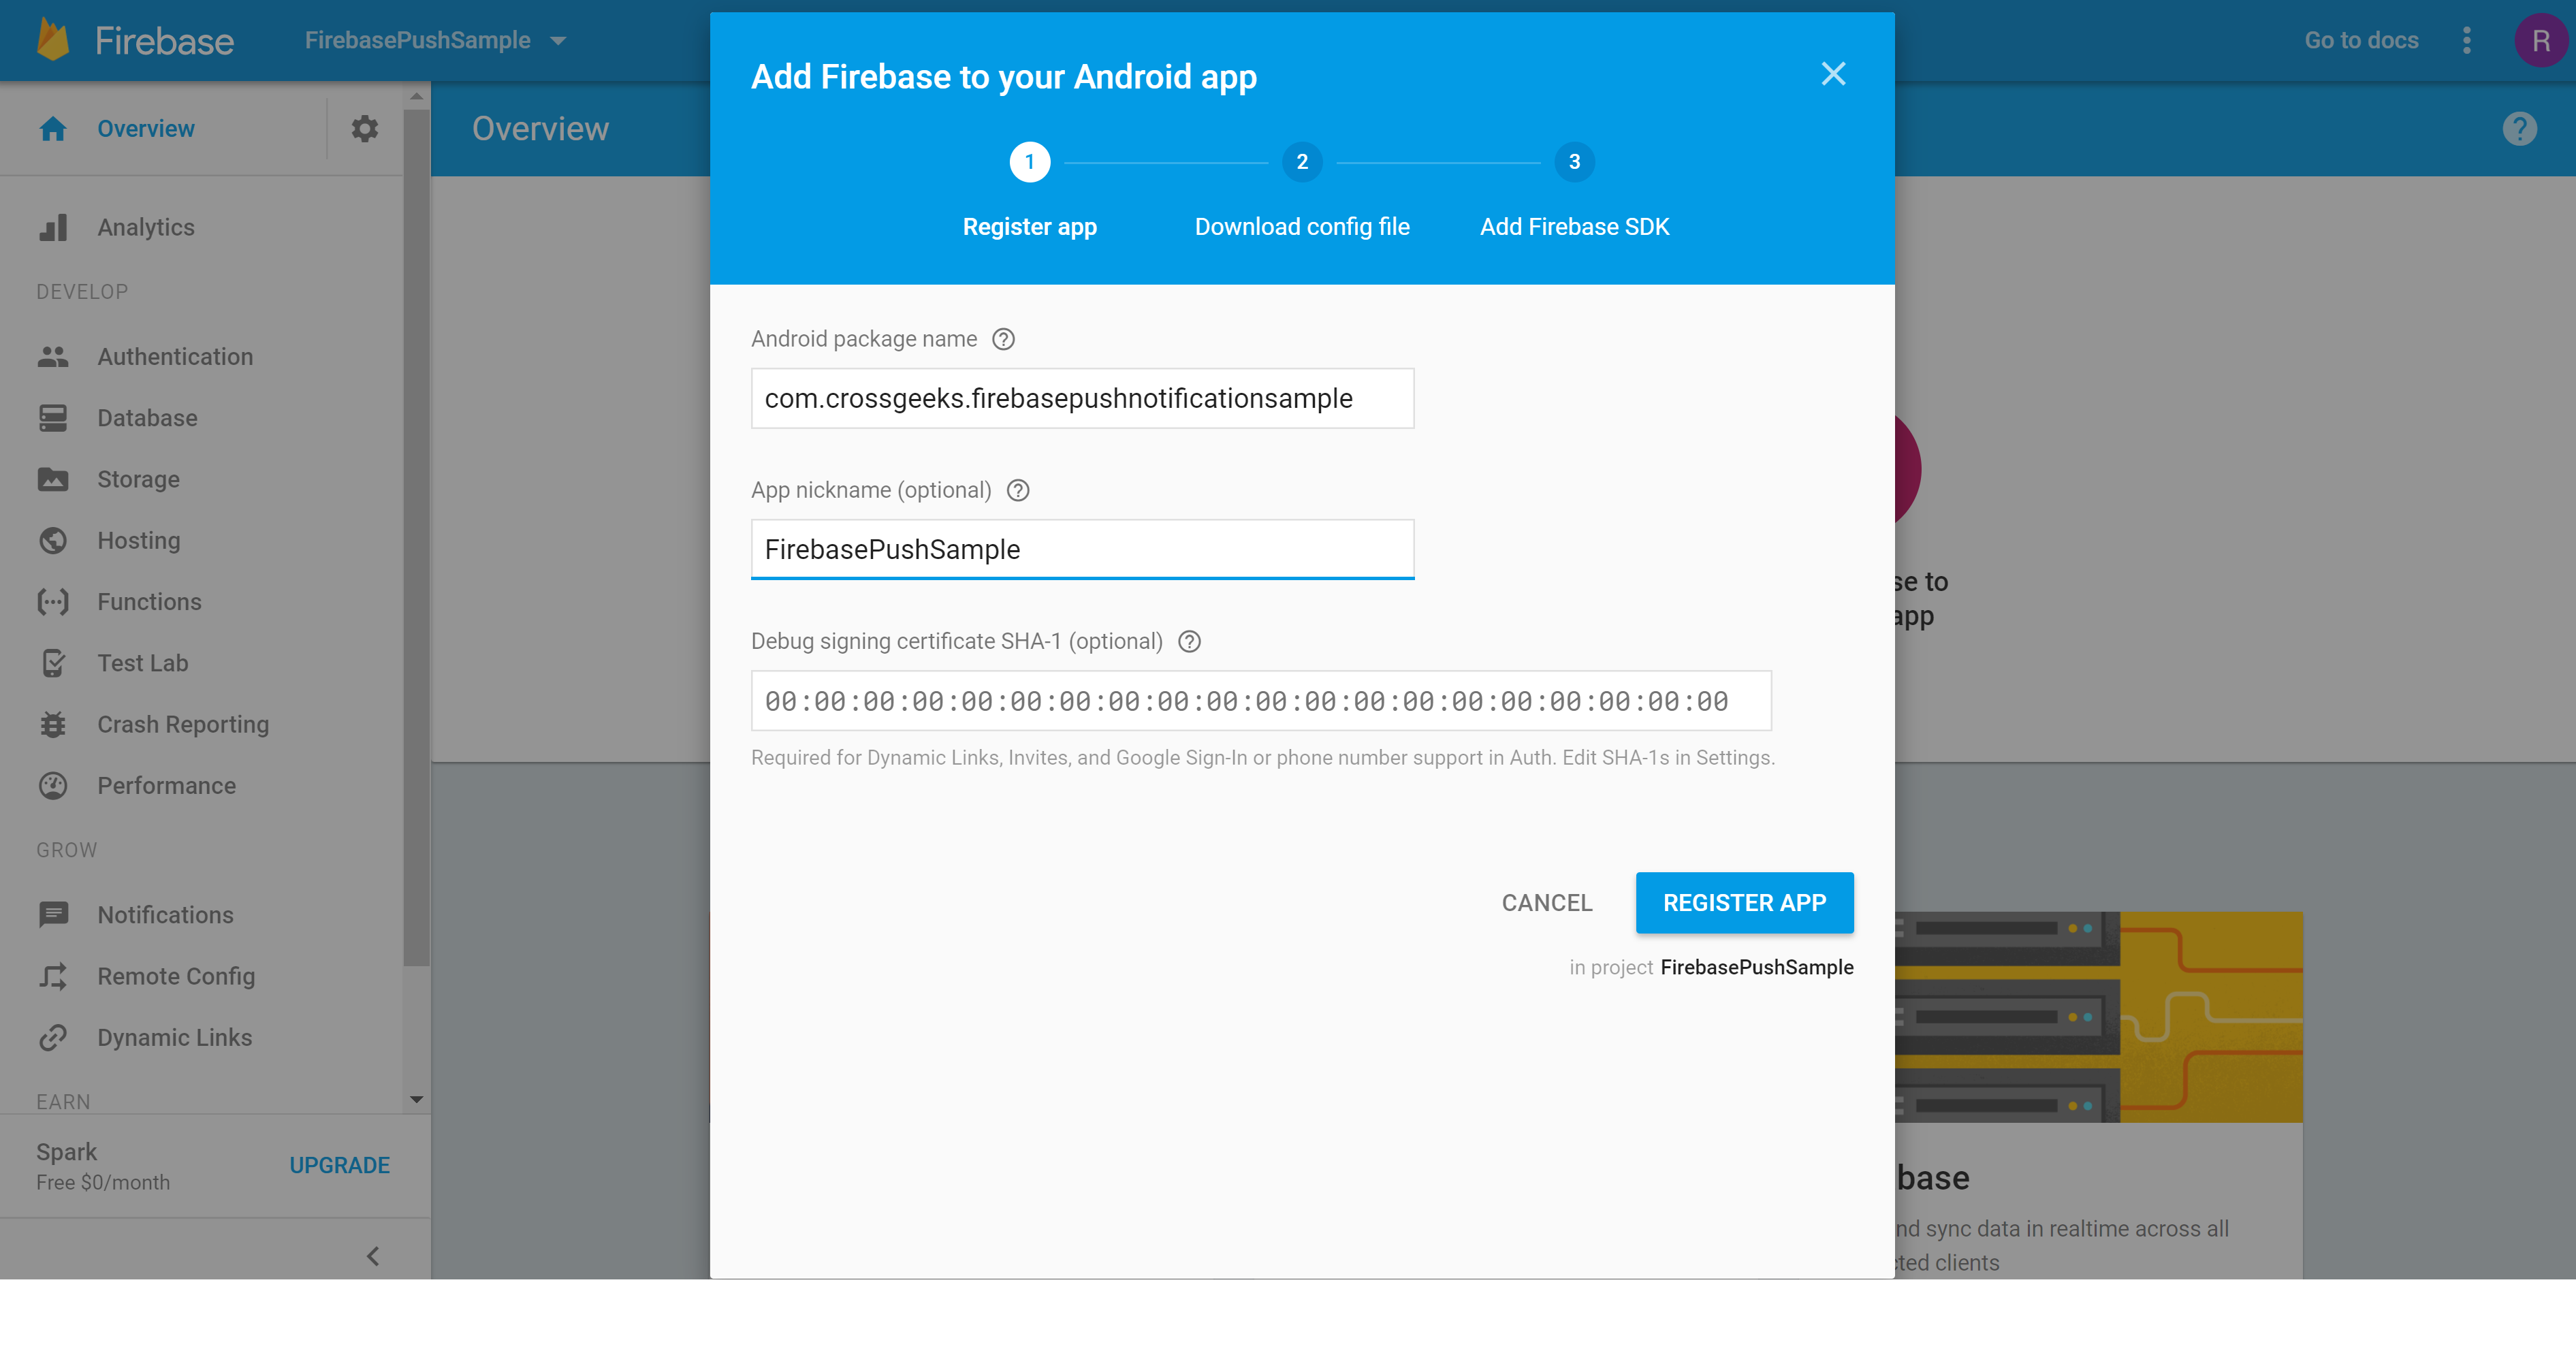 Add Firebase to Android